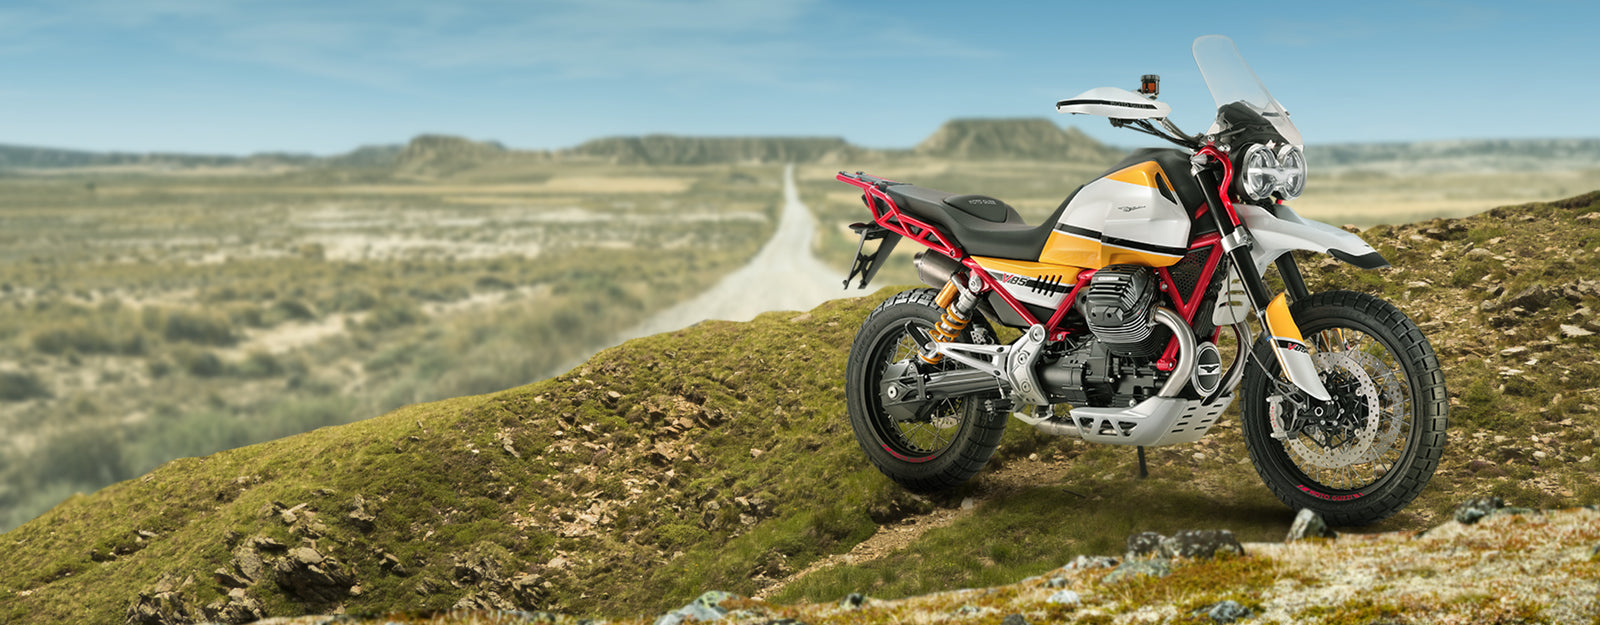 Moto Guzzi Goes Vintage with the new V85 Concept ADV Bike